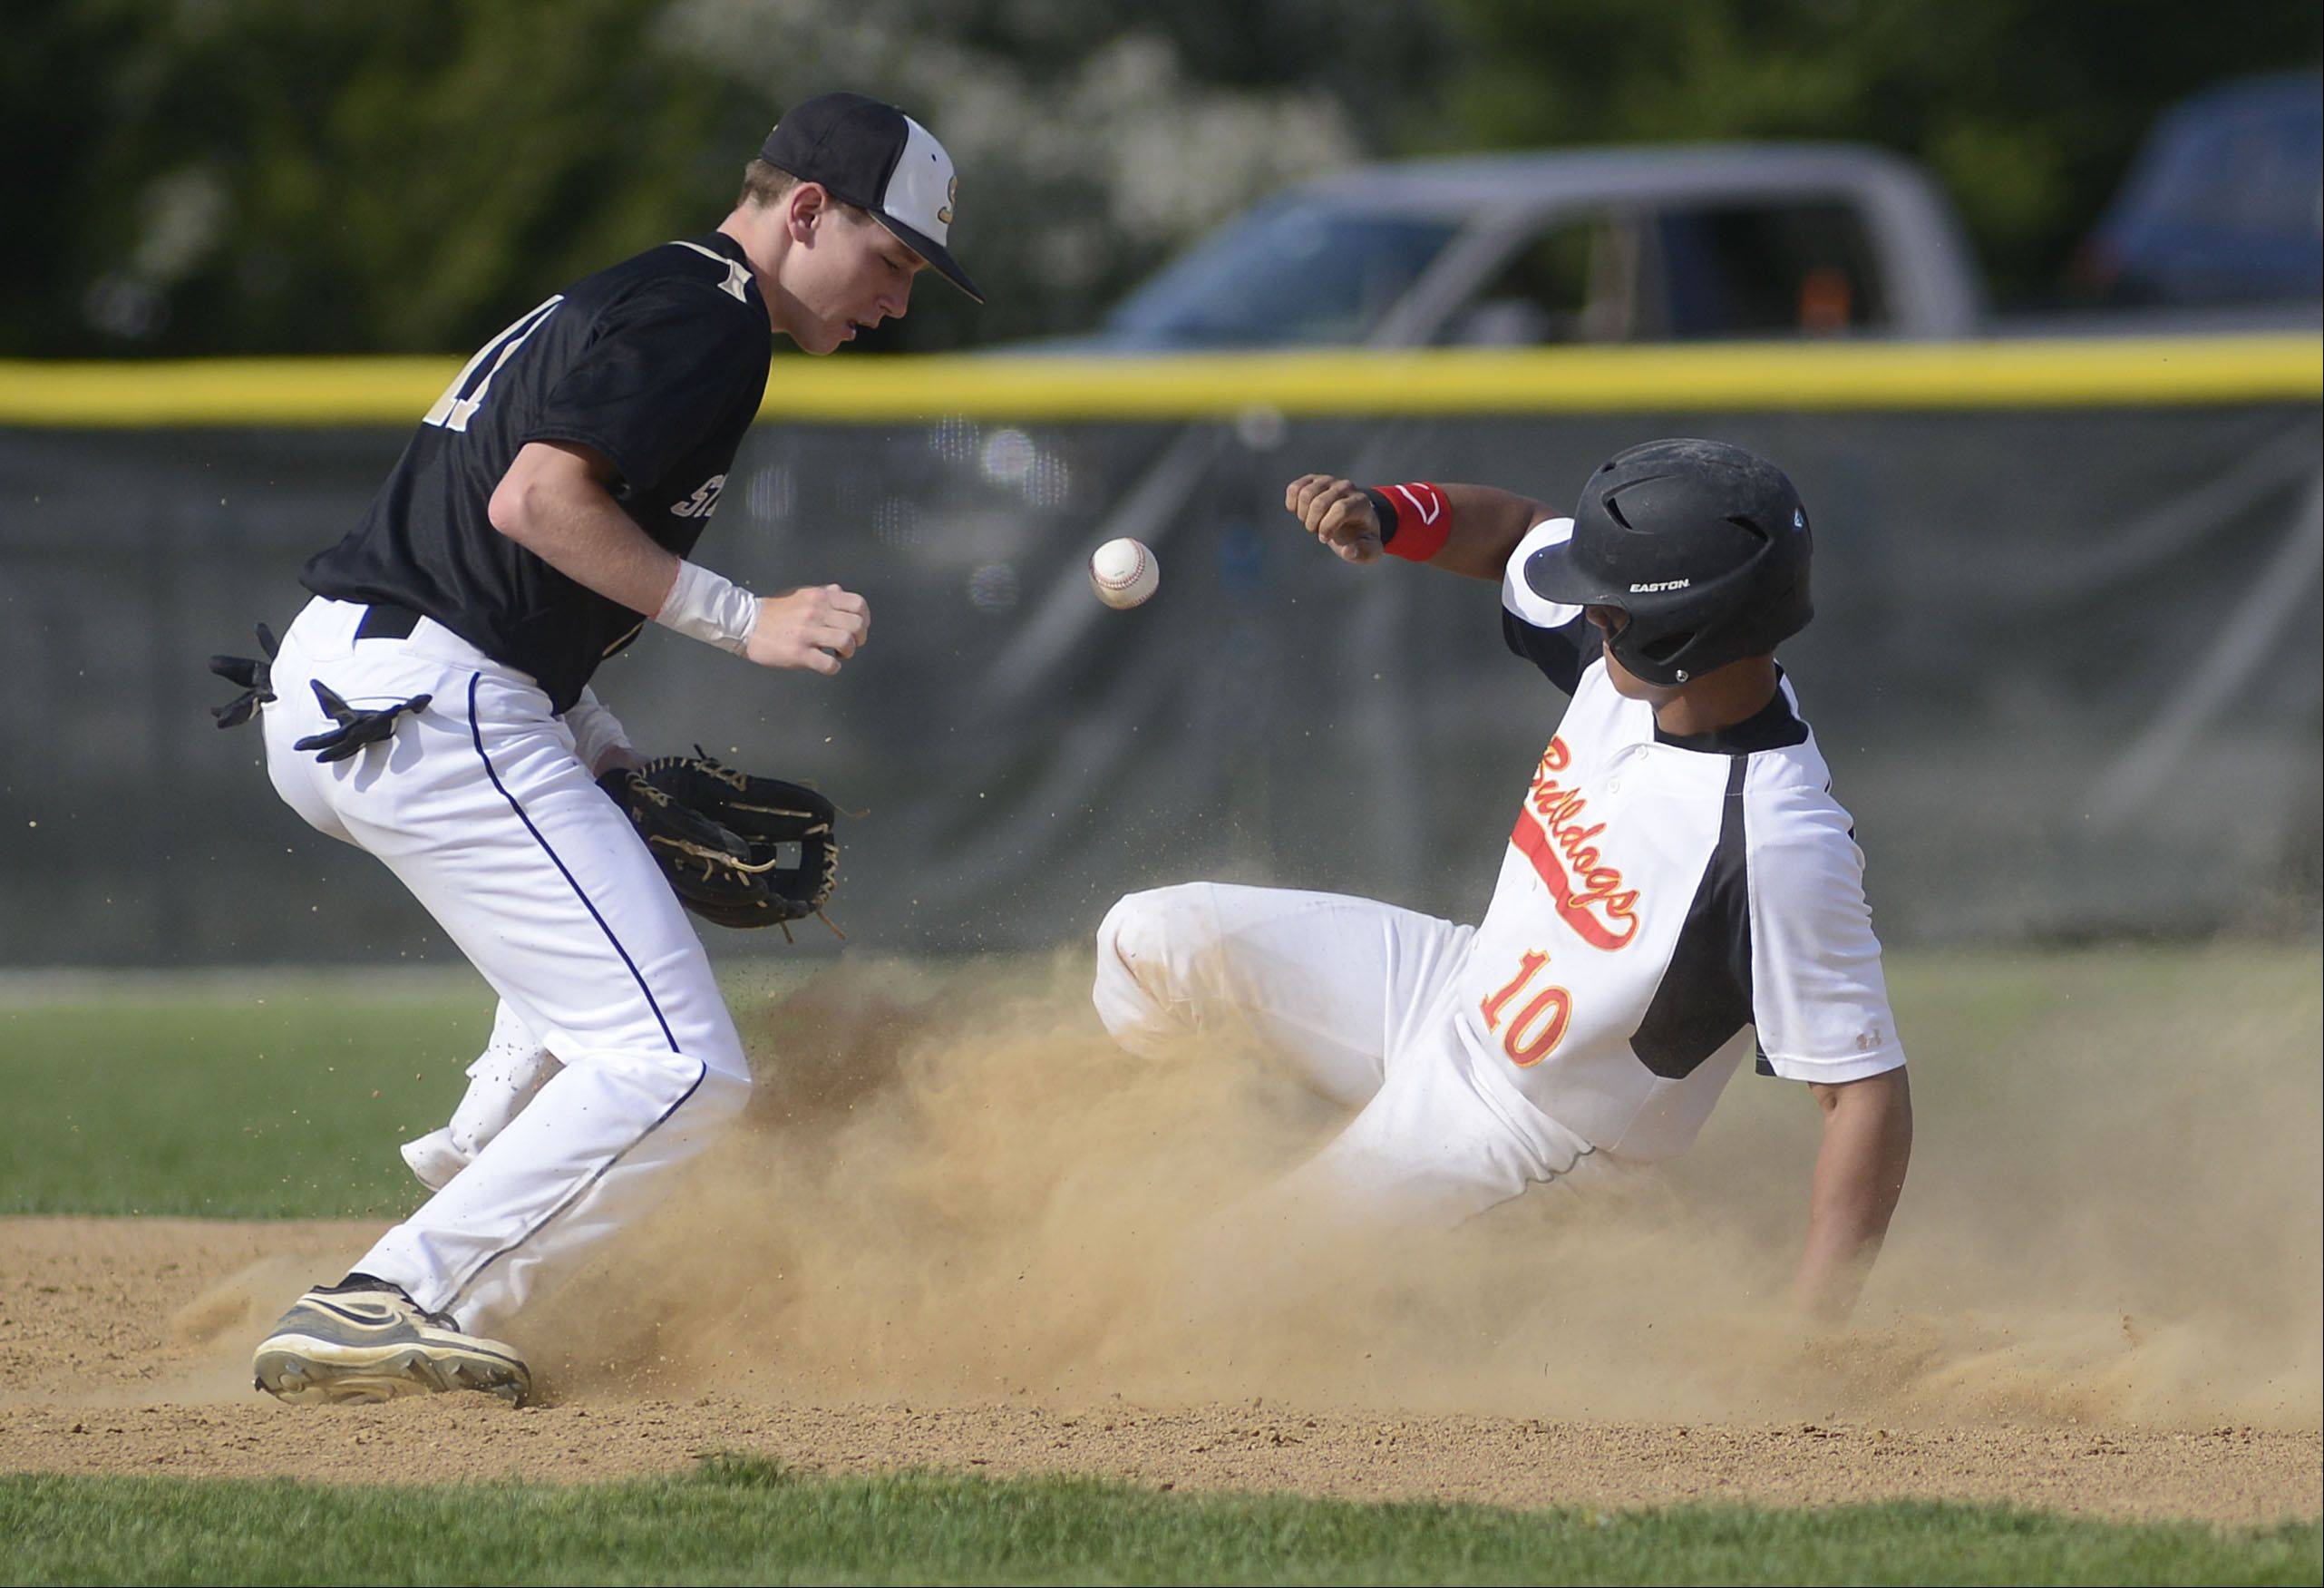 Batavia�s Laren Eustace is safe on second base as the ball pops out of Streamwood�s Michael Smith�s glove in the first inning on Wednesday, May 15.